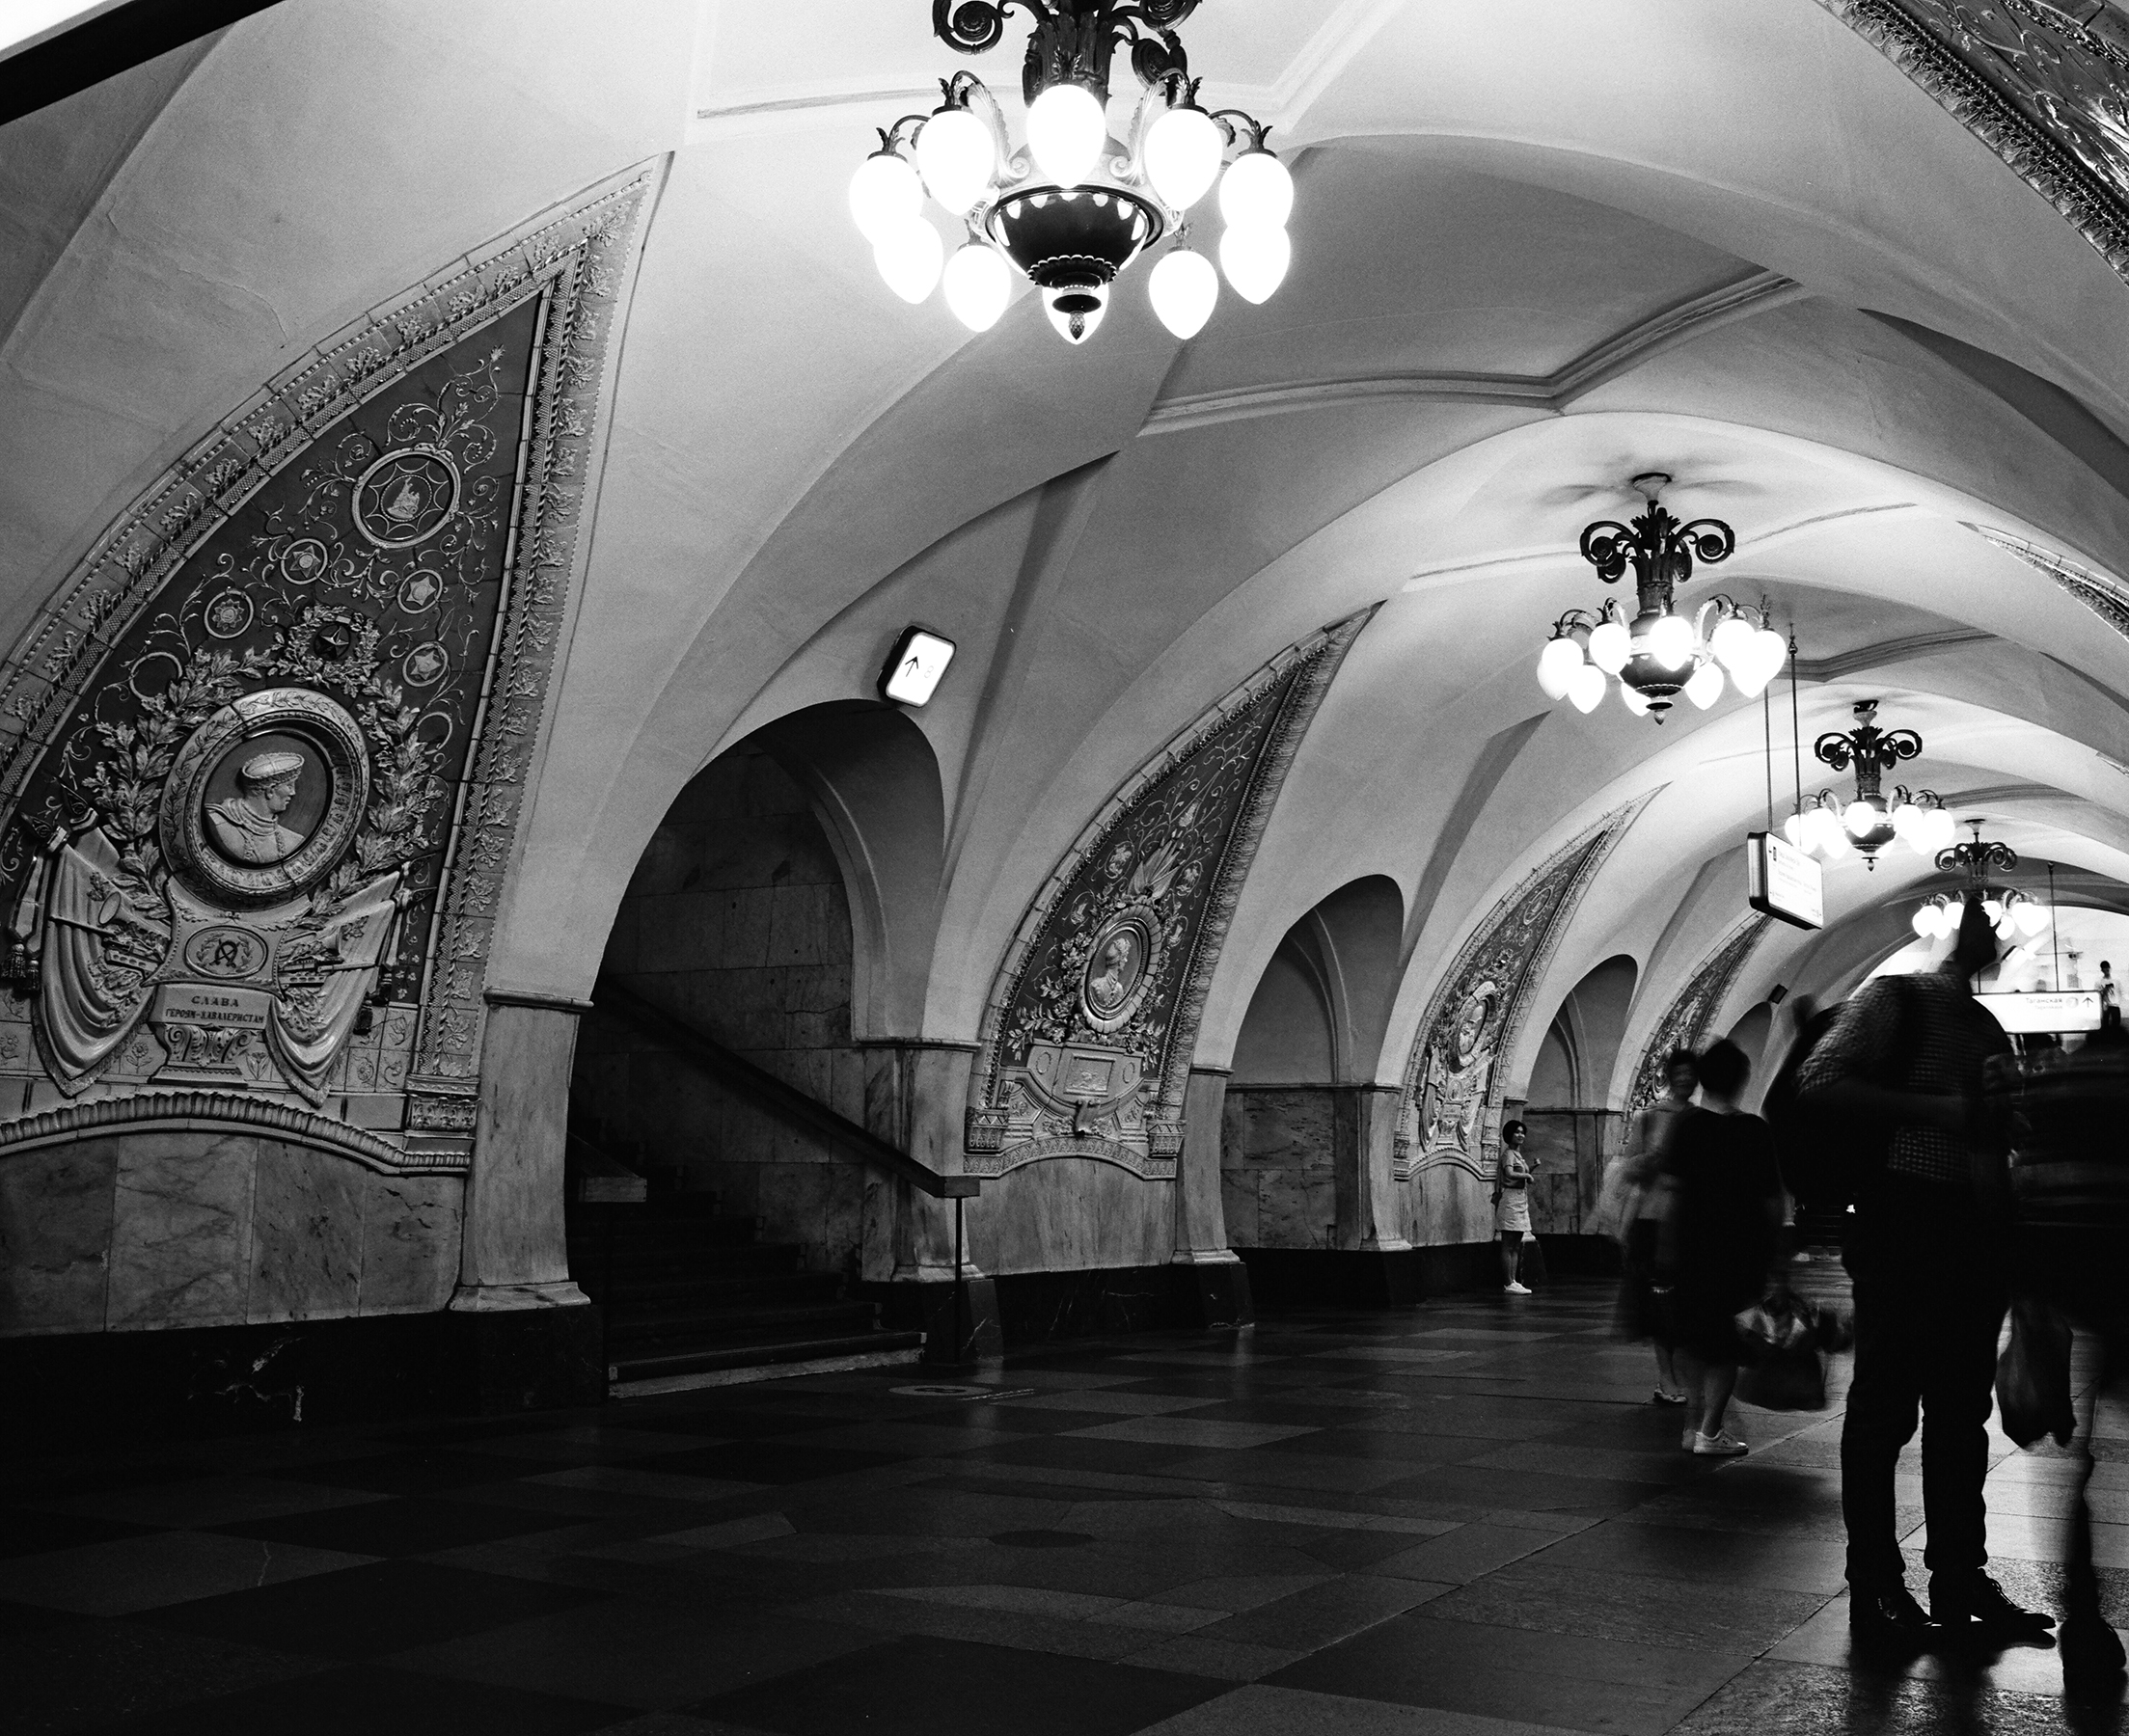 Kodak TRi-X 400 - ILFORD HP5 PLUS vs Kodak Tri-X 400 at EI 1600 in the Moscow Metro